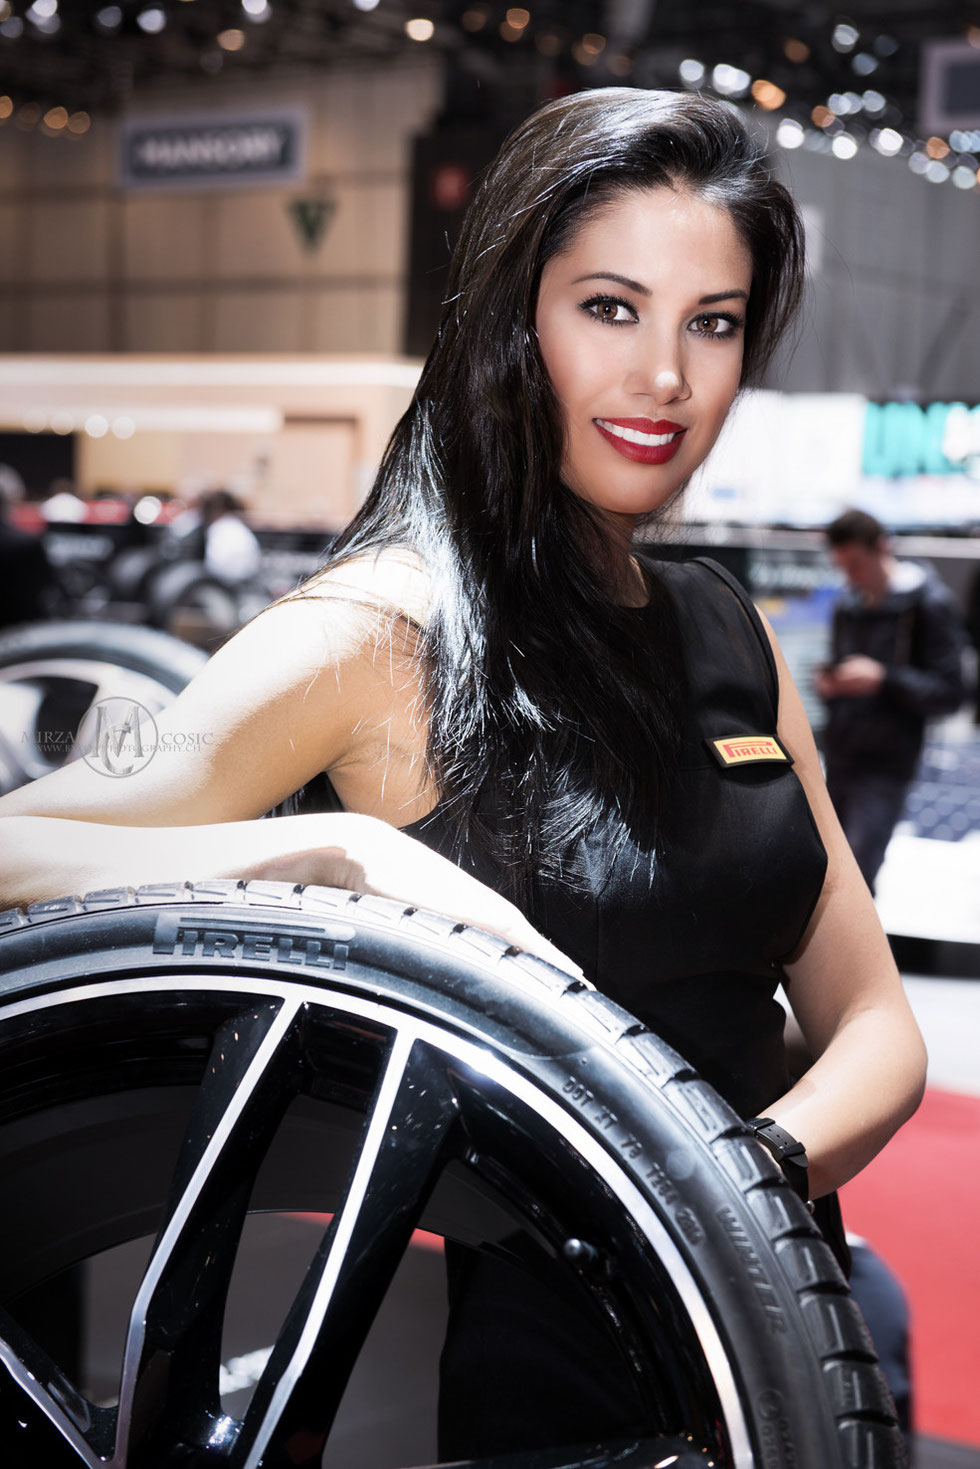 All Rights Reserved Mirza Cosic | Pirelli | Geneve | 2015